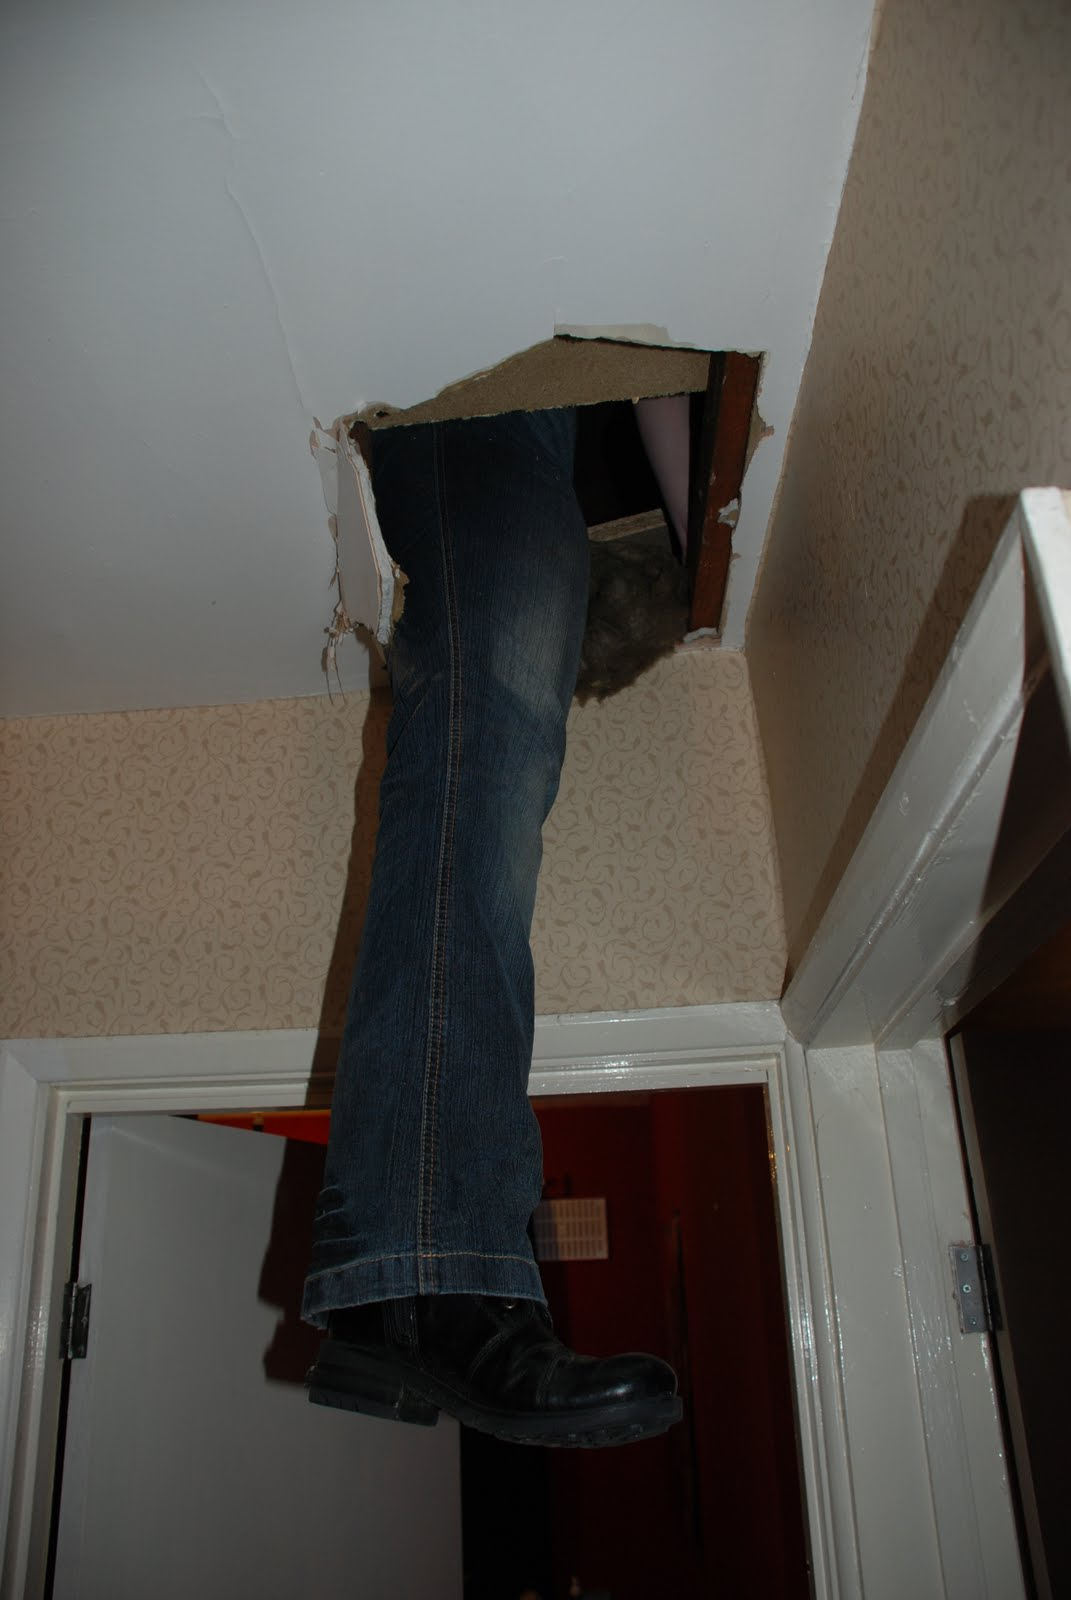 Putting My Foot Through The Ceiling